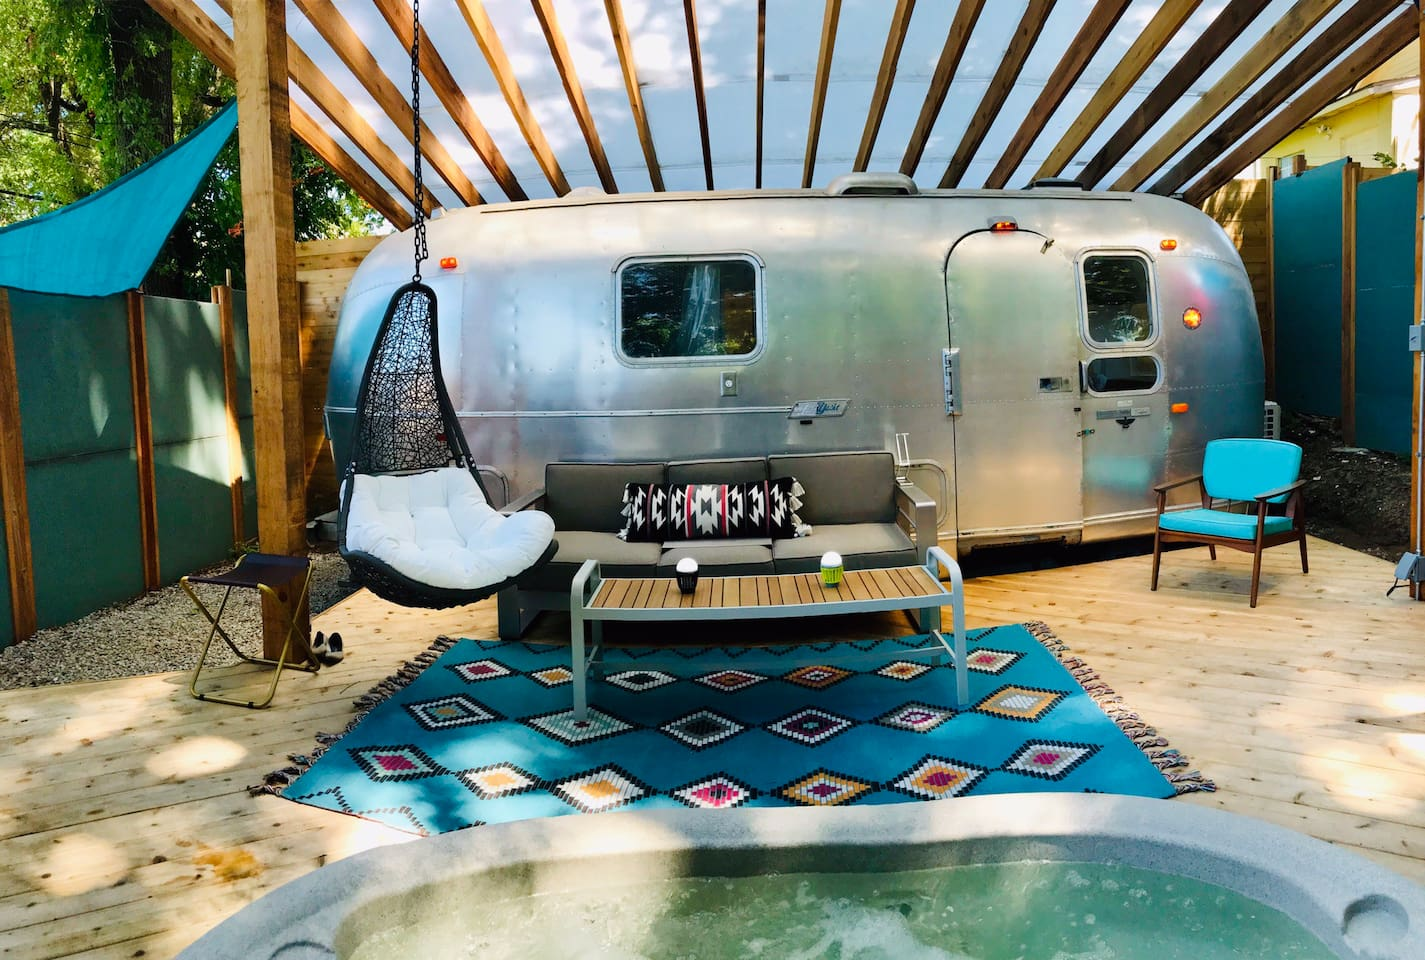 Welcome to our Modern Airstream TinyHouse! It comes with a hot tub, high end kitchen and bathroom, and all the charm you can handle!